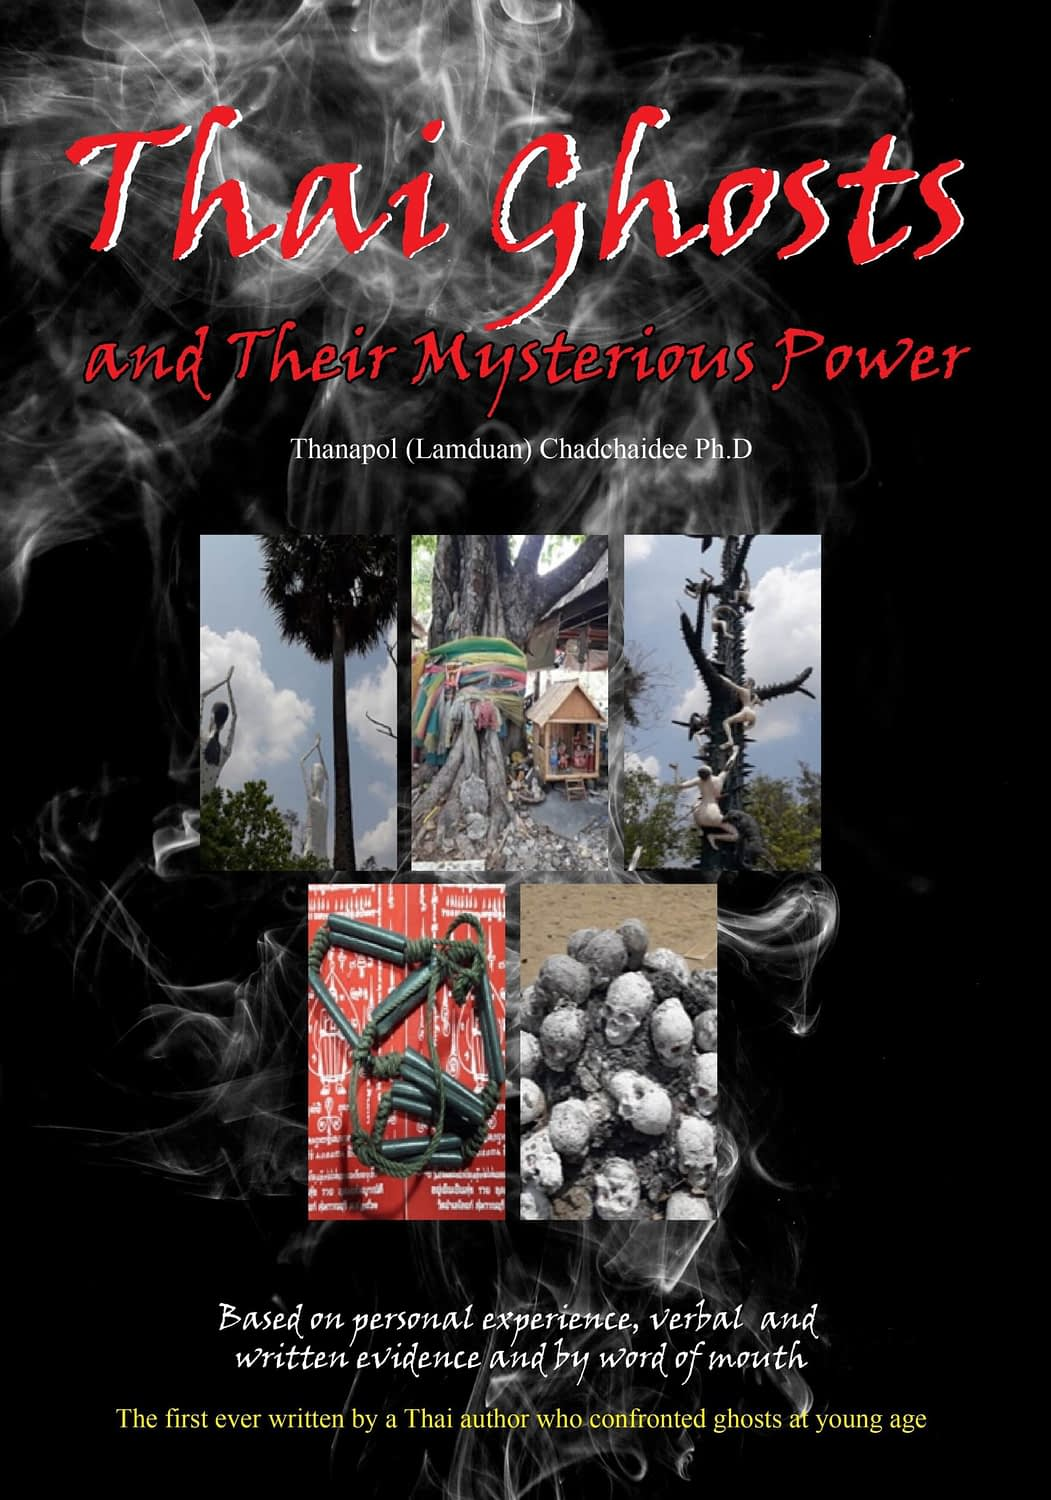 333-Thai-Ghosts-cover-2-scaled.jpg